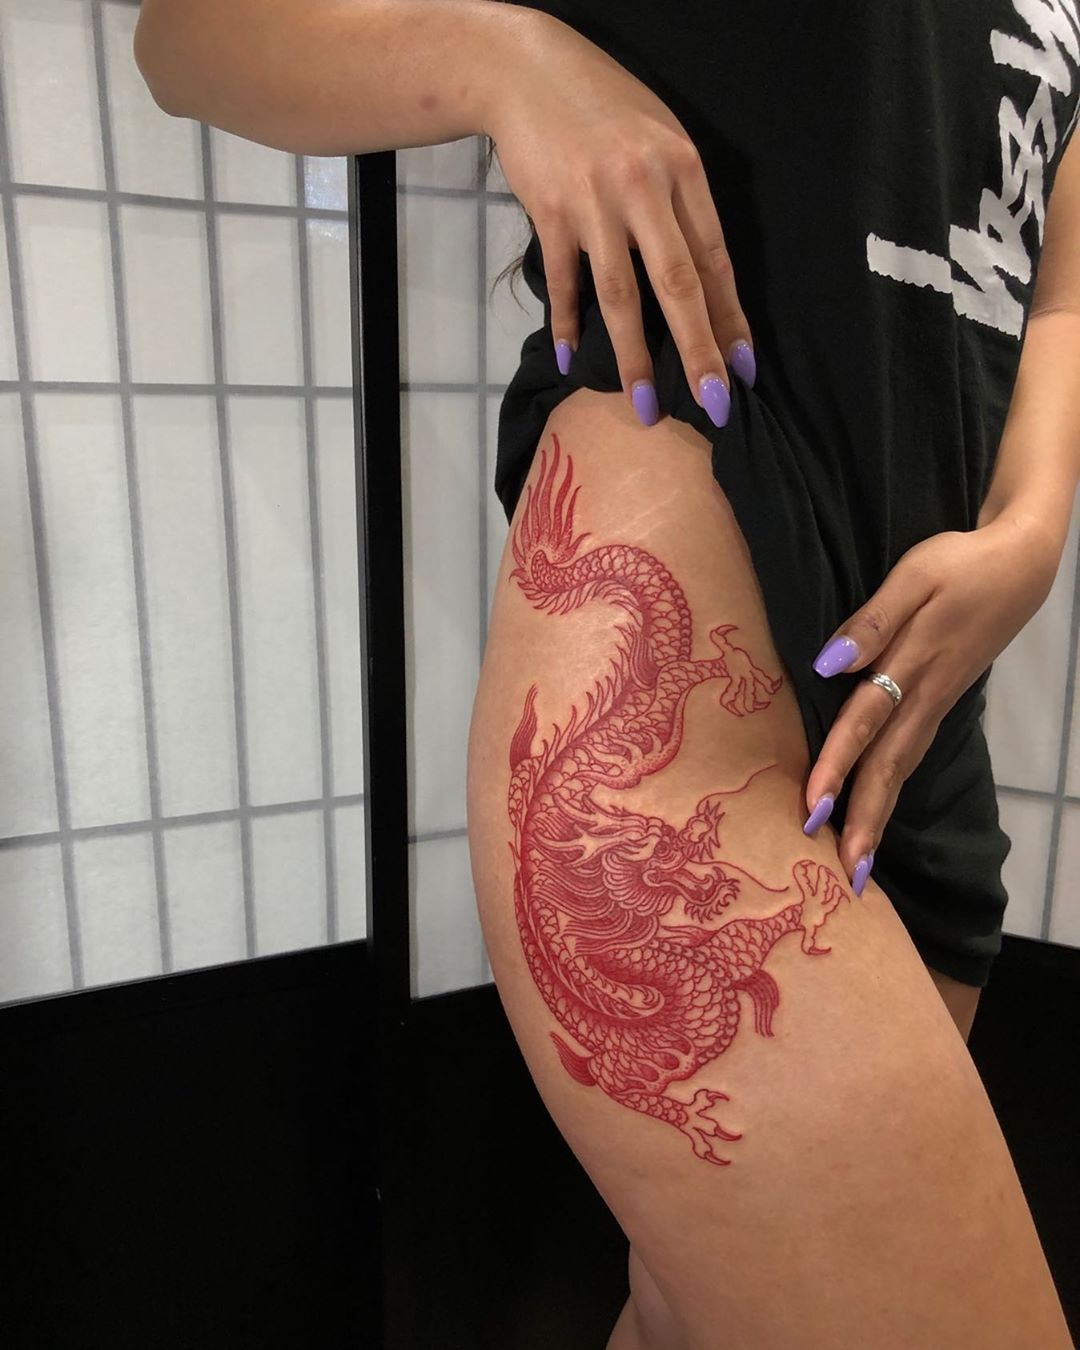 Red Dragon Hip Tattoo Red Tattoos Dragon Tattoo For Women Red Ink Tattoos